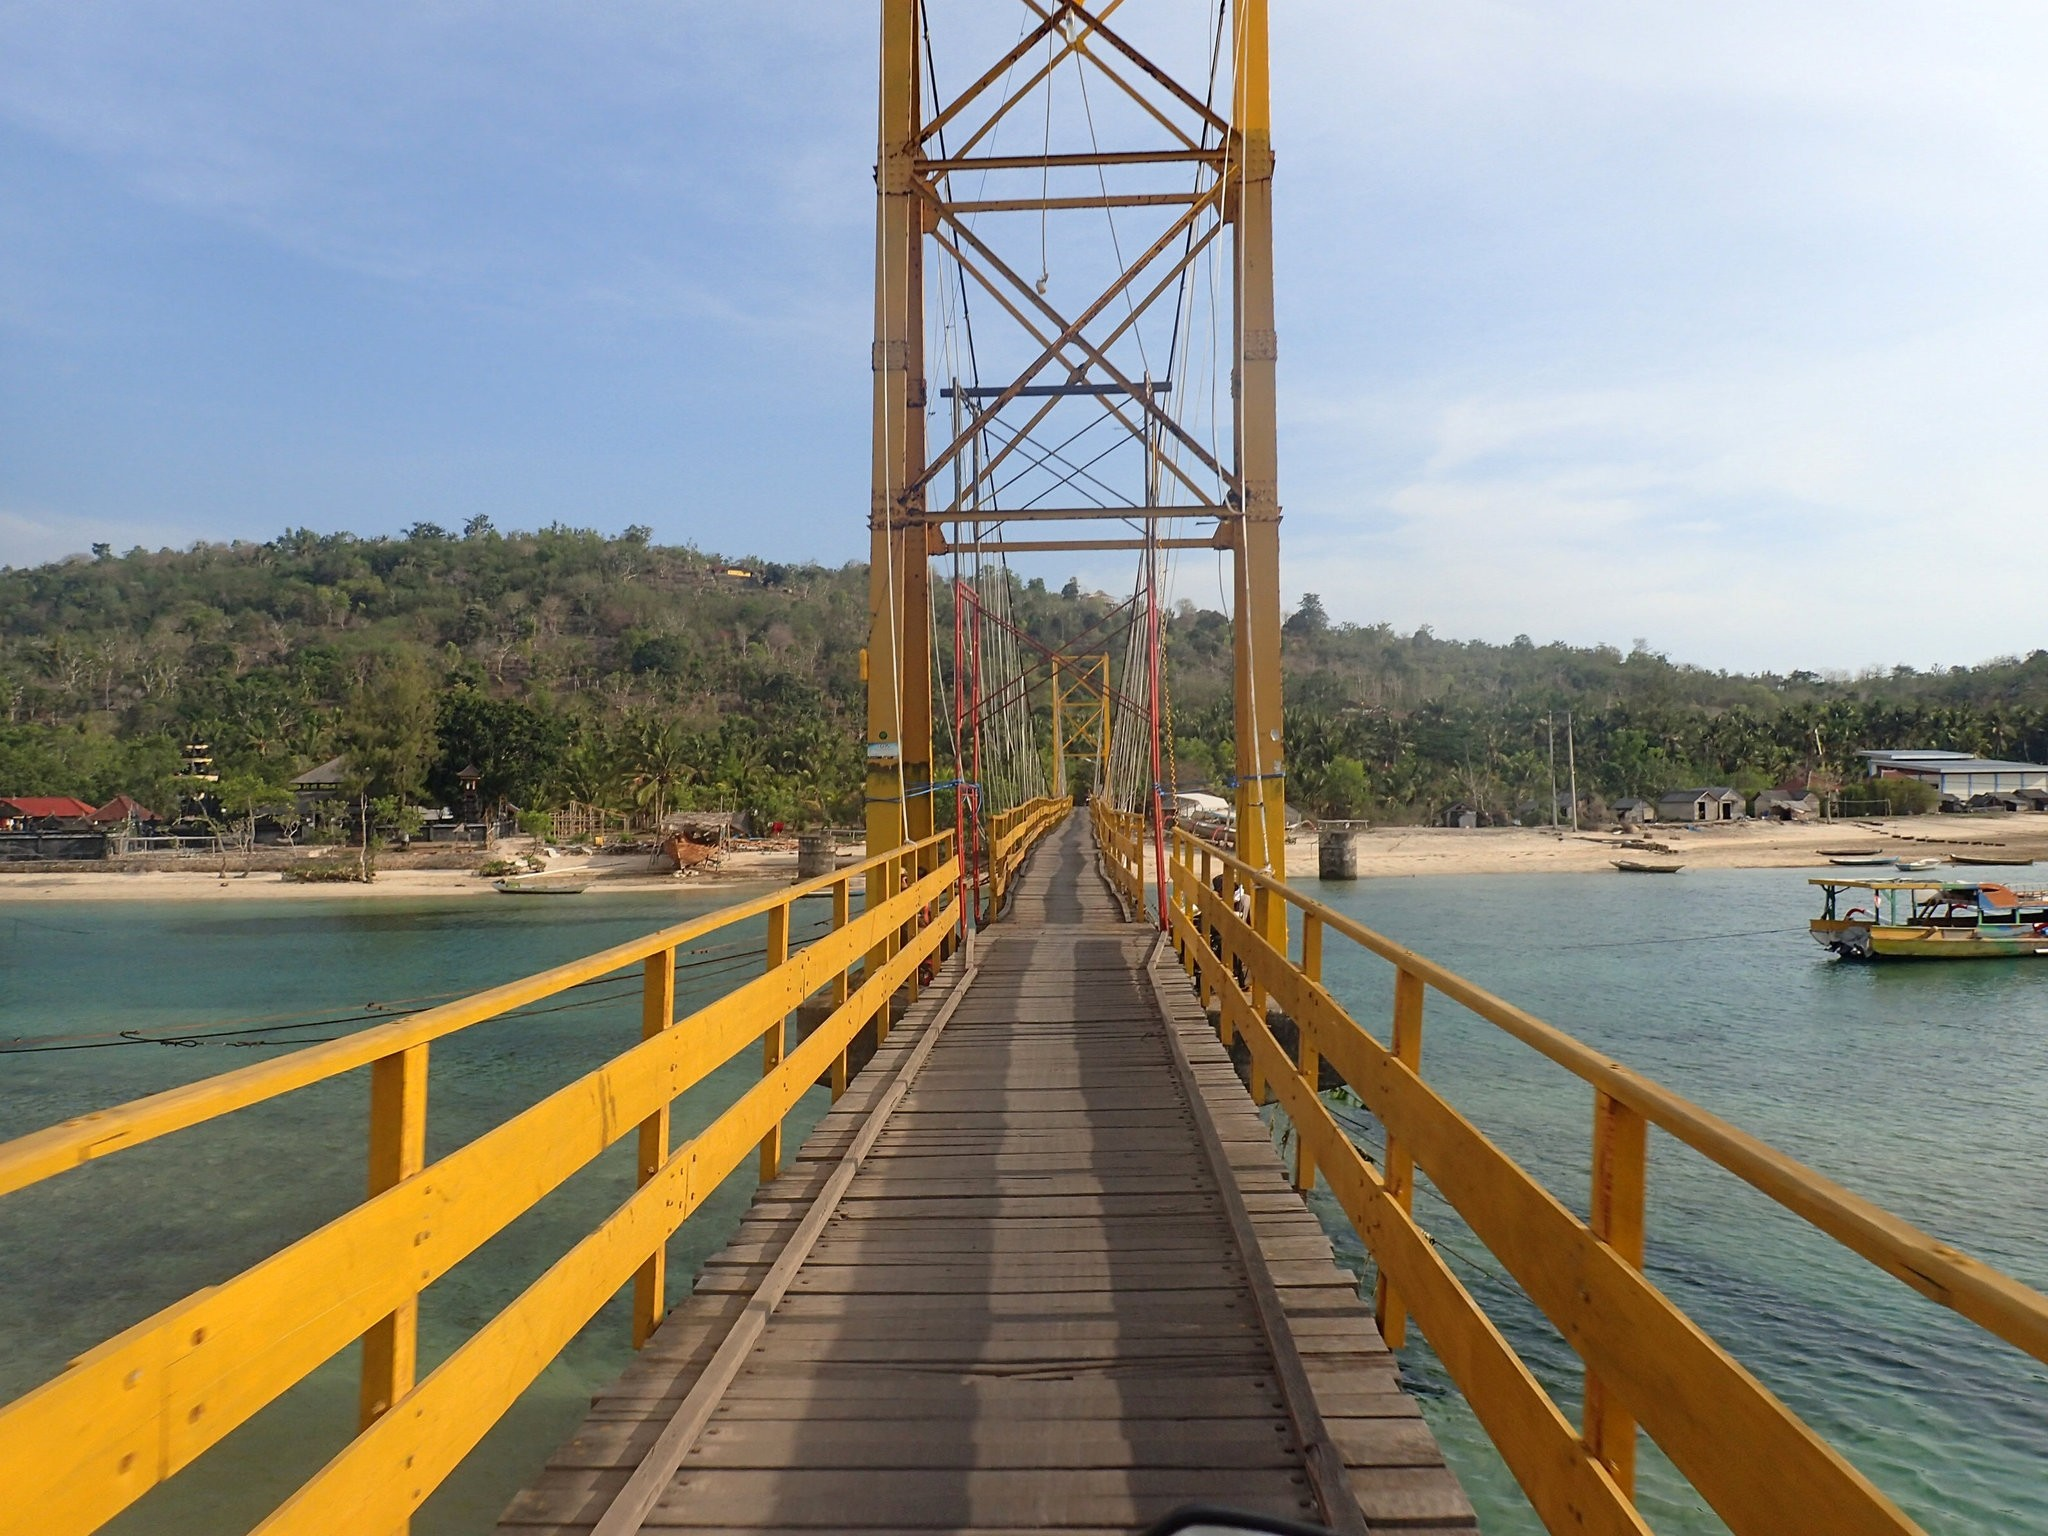 The ,Yellow Bridge, which connects Nusa Lembongan and Nusa Ceningan, two islands located east of the resort island of Bali, Indonesia. (Reuters Photo)